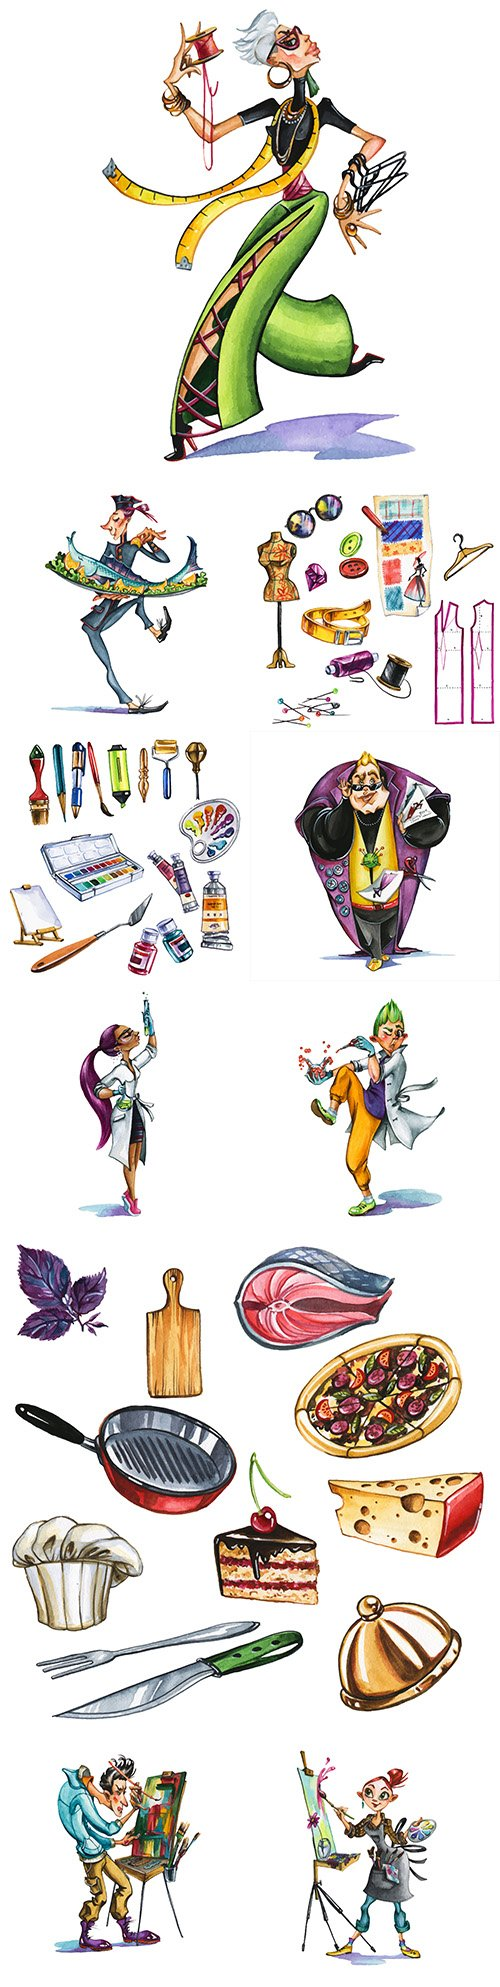 Cartoon characters of different professions and subjects watercolor illustrations